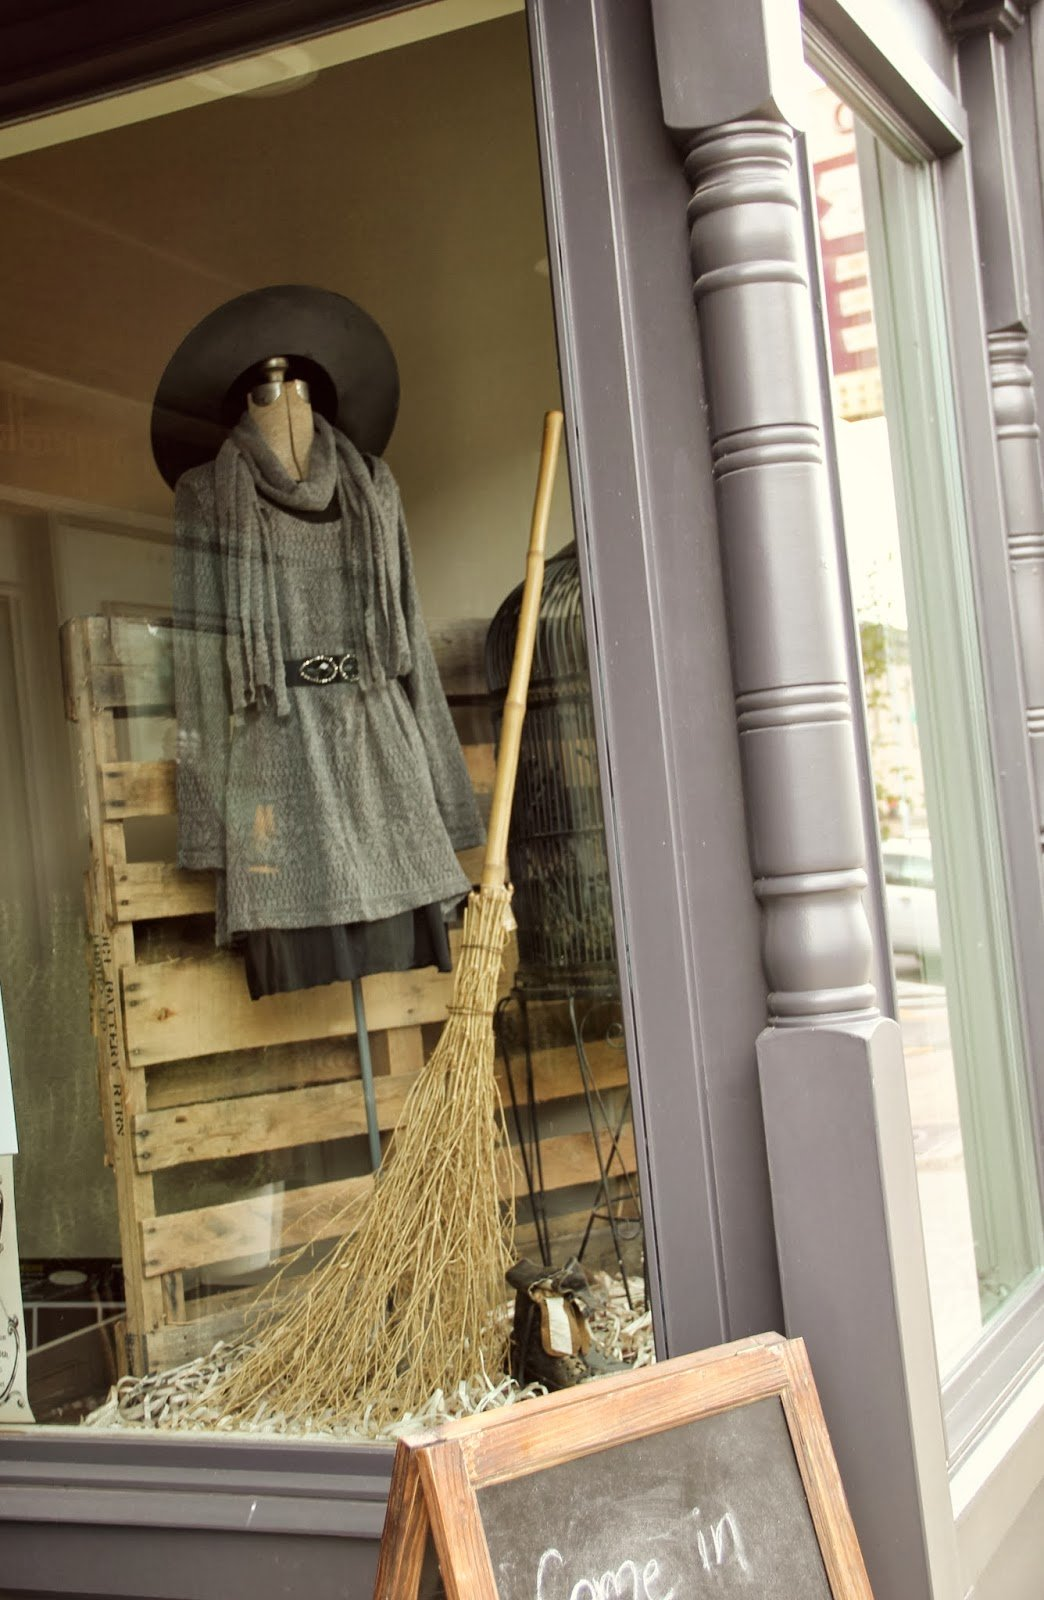 witch Halloween Retail Display Ideas